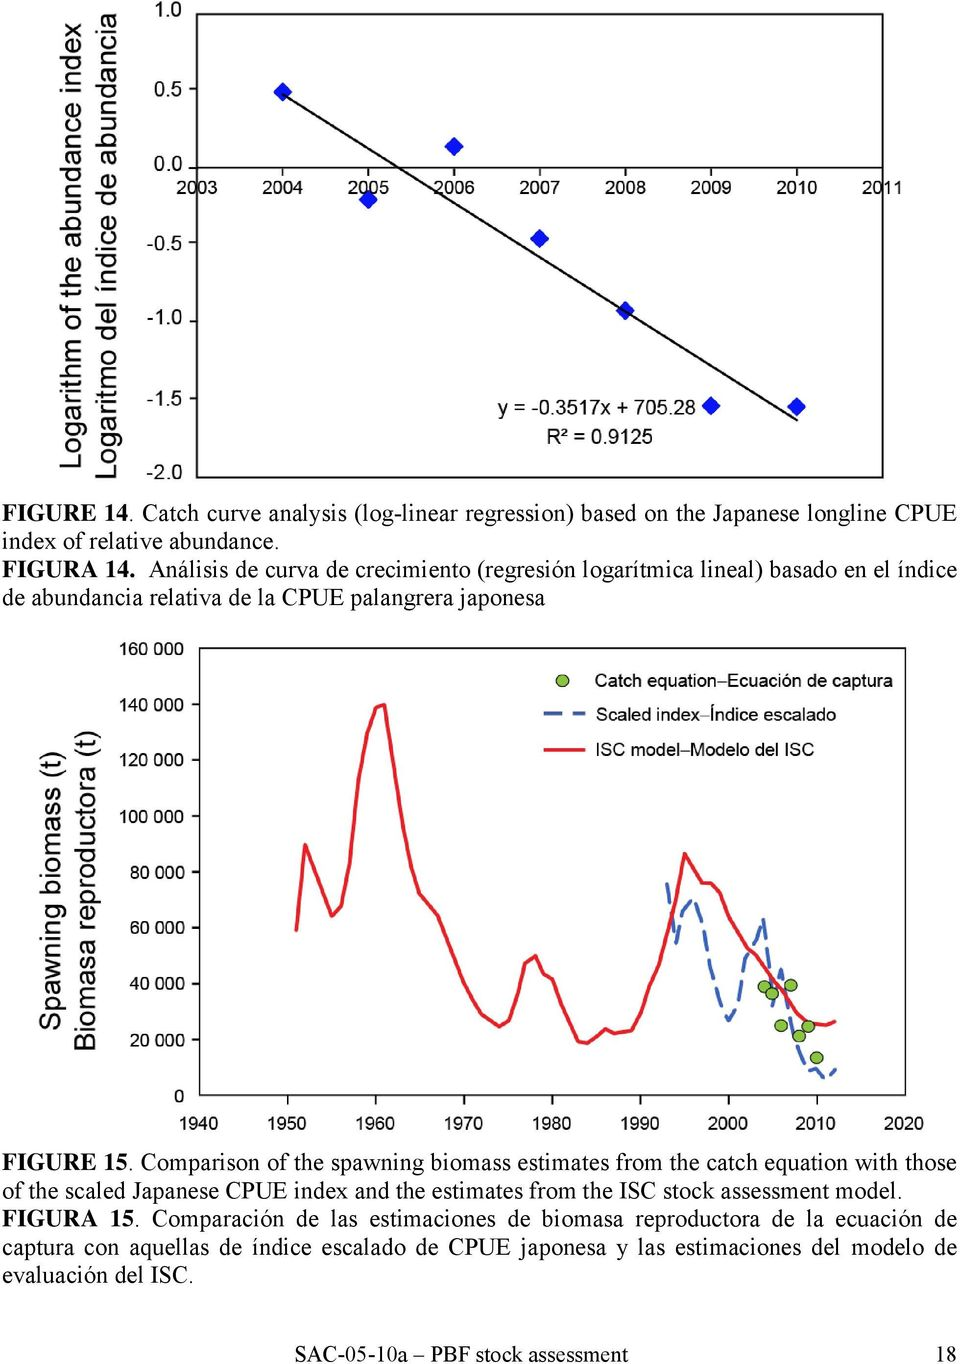 Comparison of the spawning biomass estimates from the catch equation with those of the scaled Japanese CPUE index and the estimates from the ISC stock assessment model.